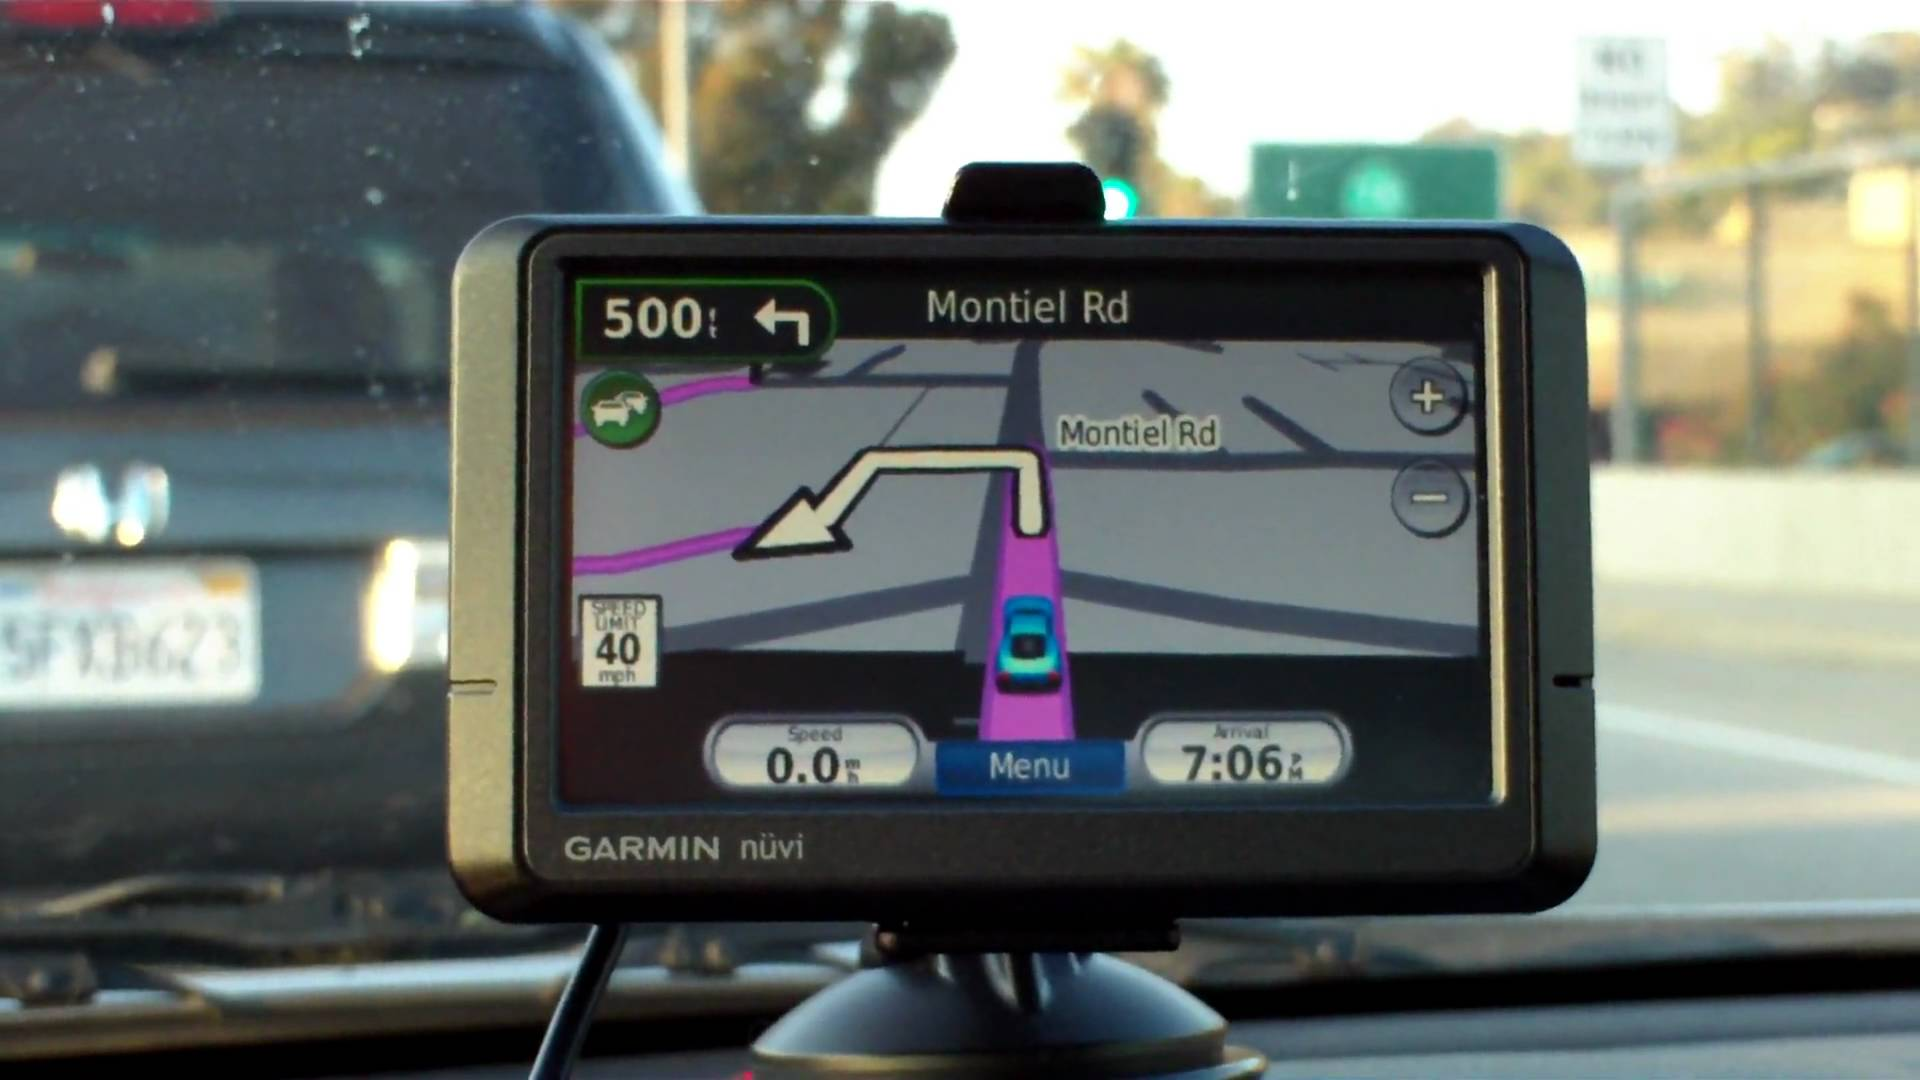 Best Way To Have A Gps Tracker On Your Car